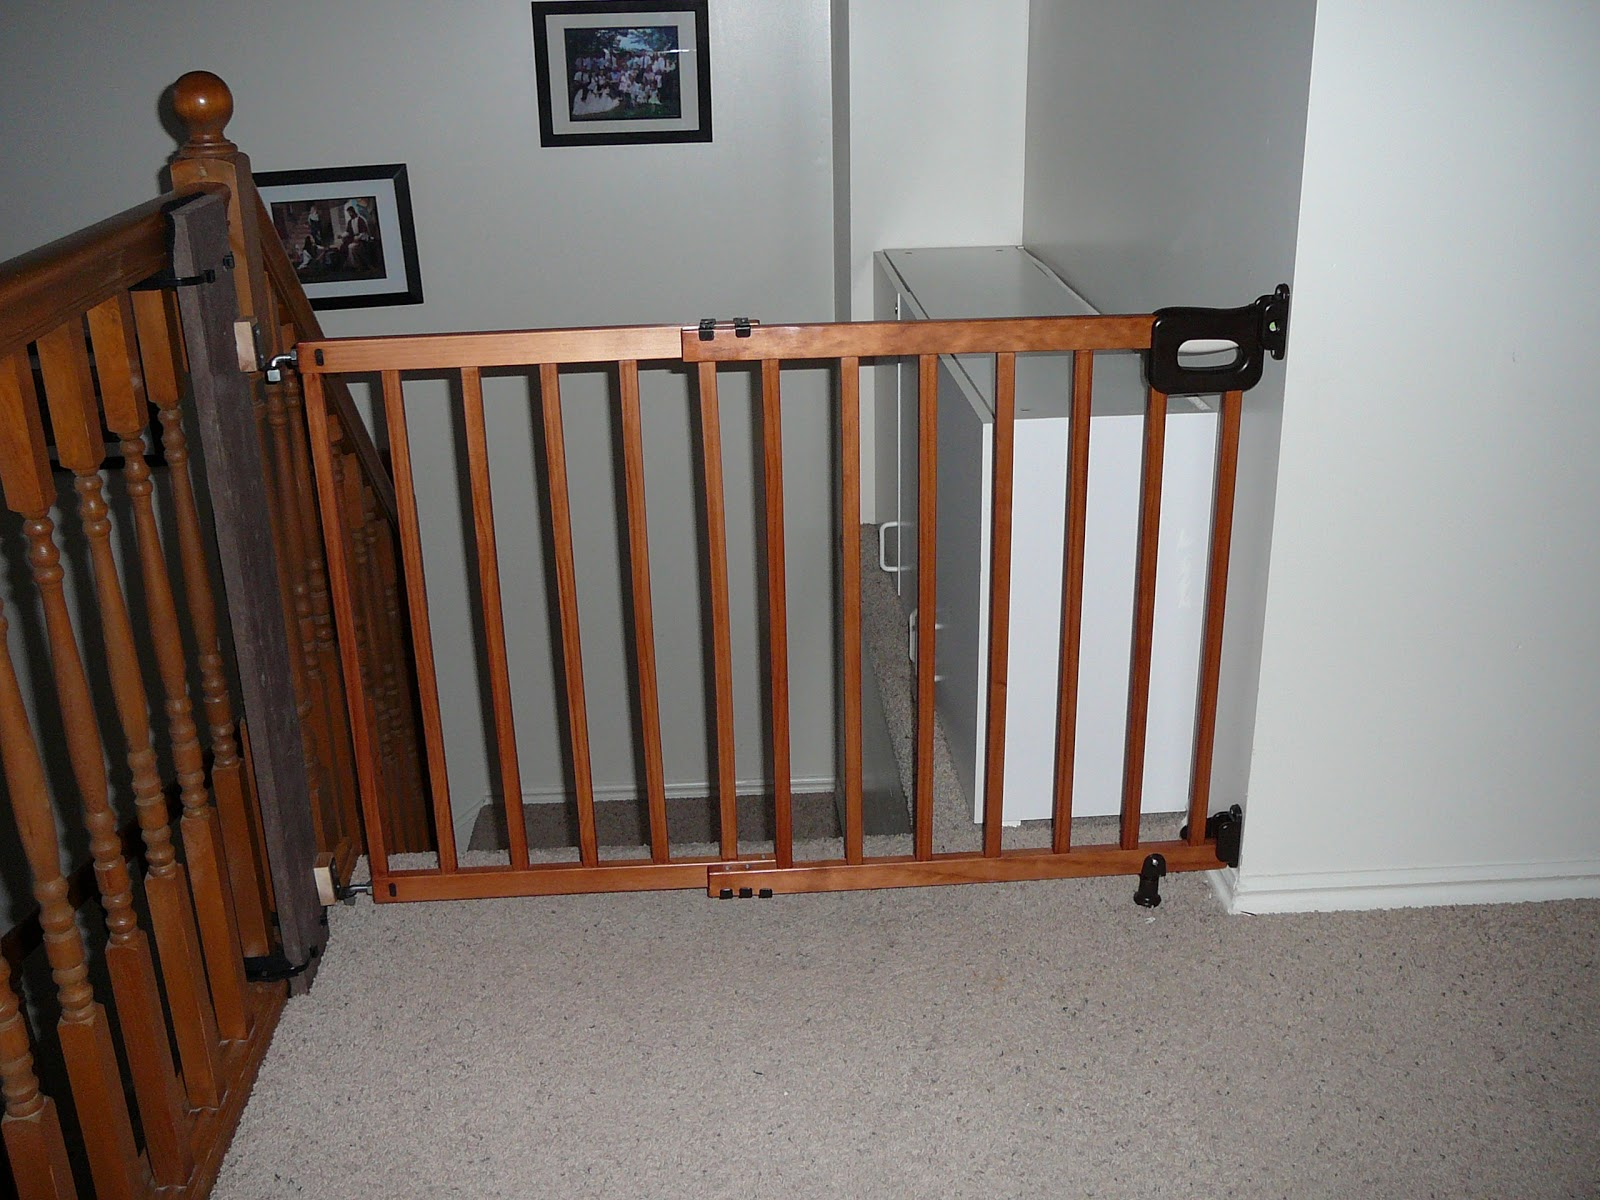 Five Frugal Sisters Banister Attachment For Baby Safety Gate